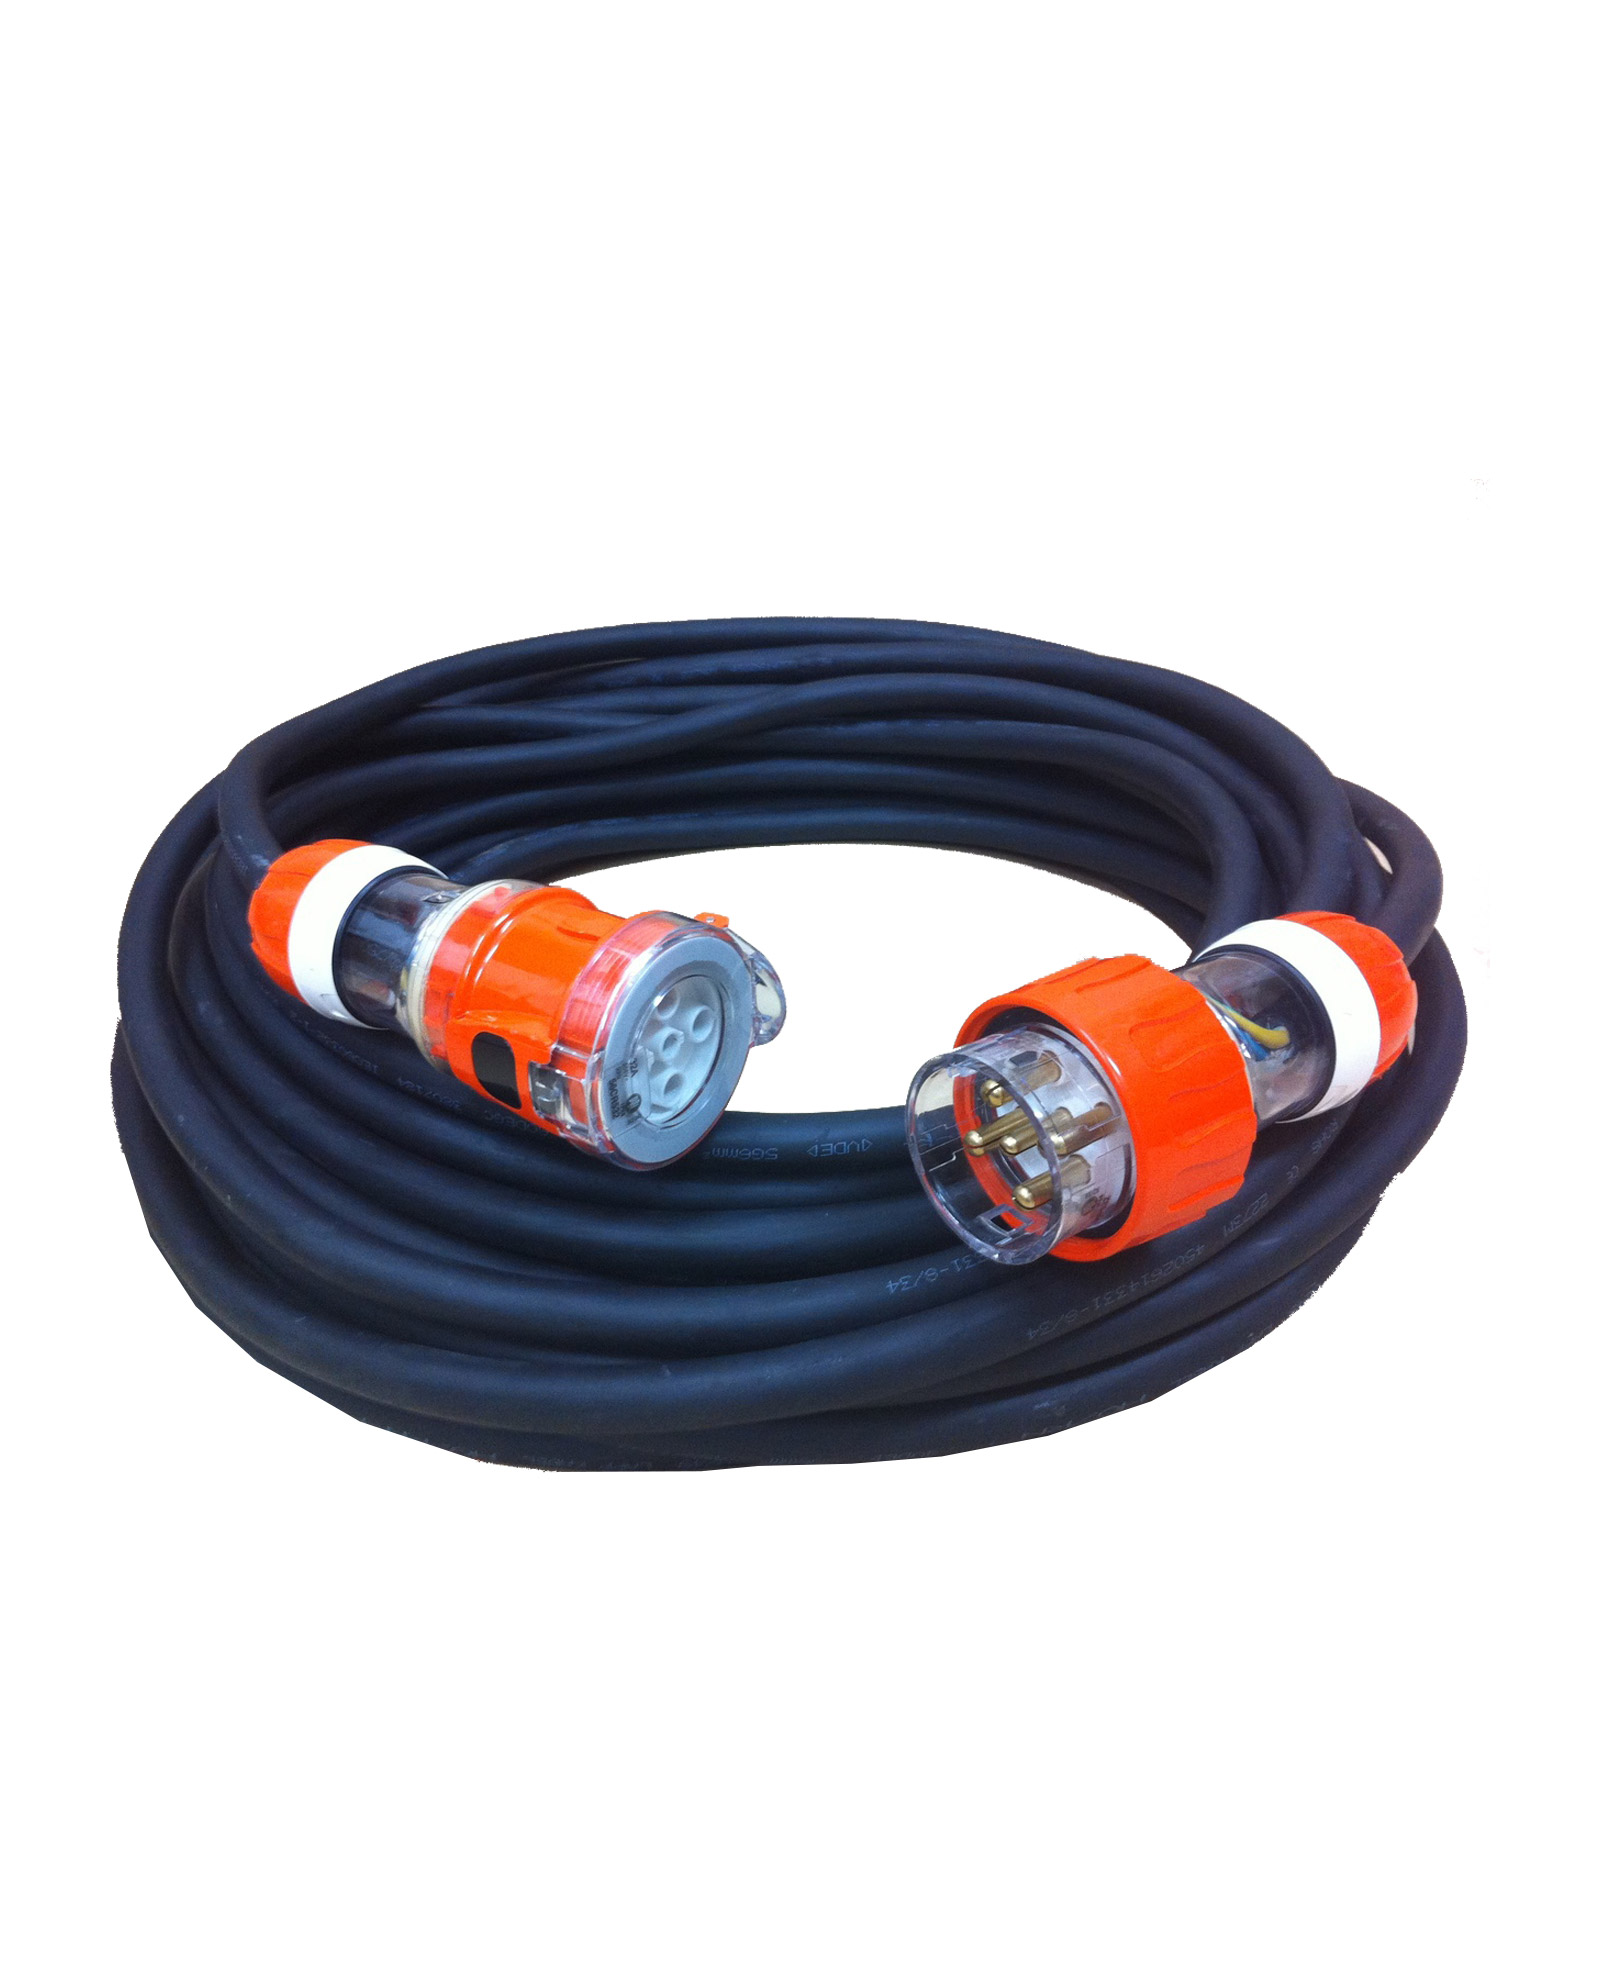 32A 3 Phase PDL 56 Series 5 Pin Cable Extension